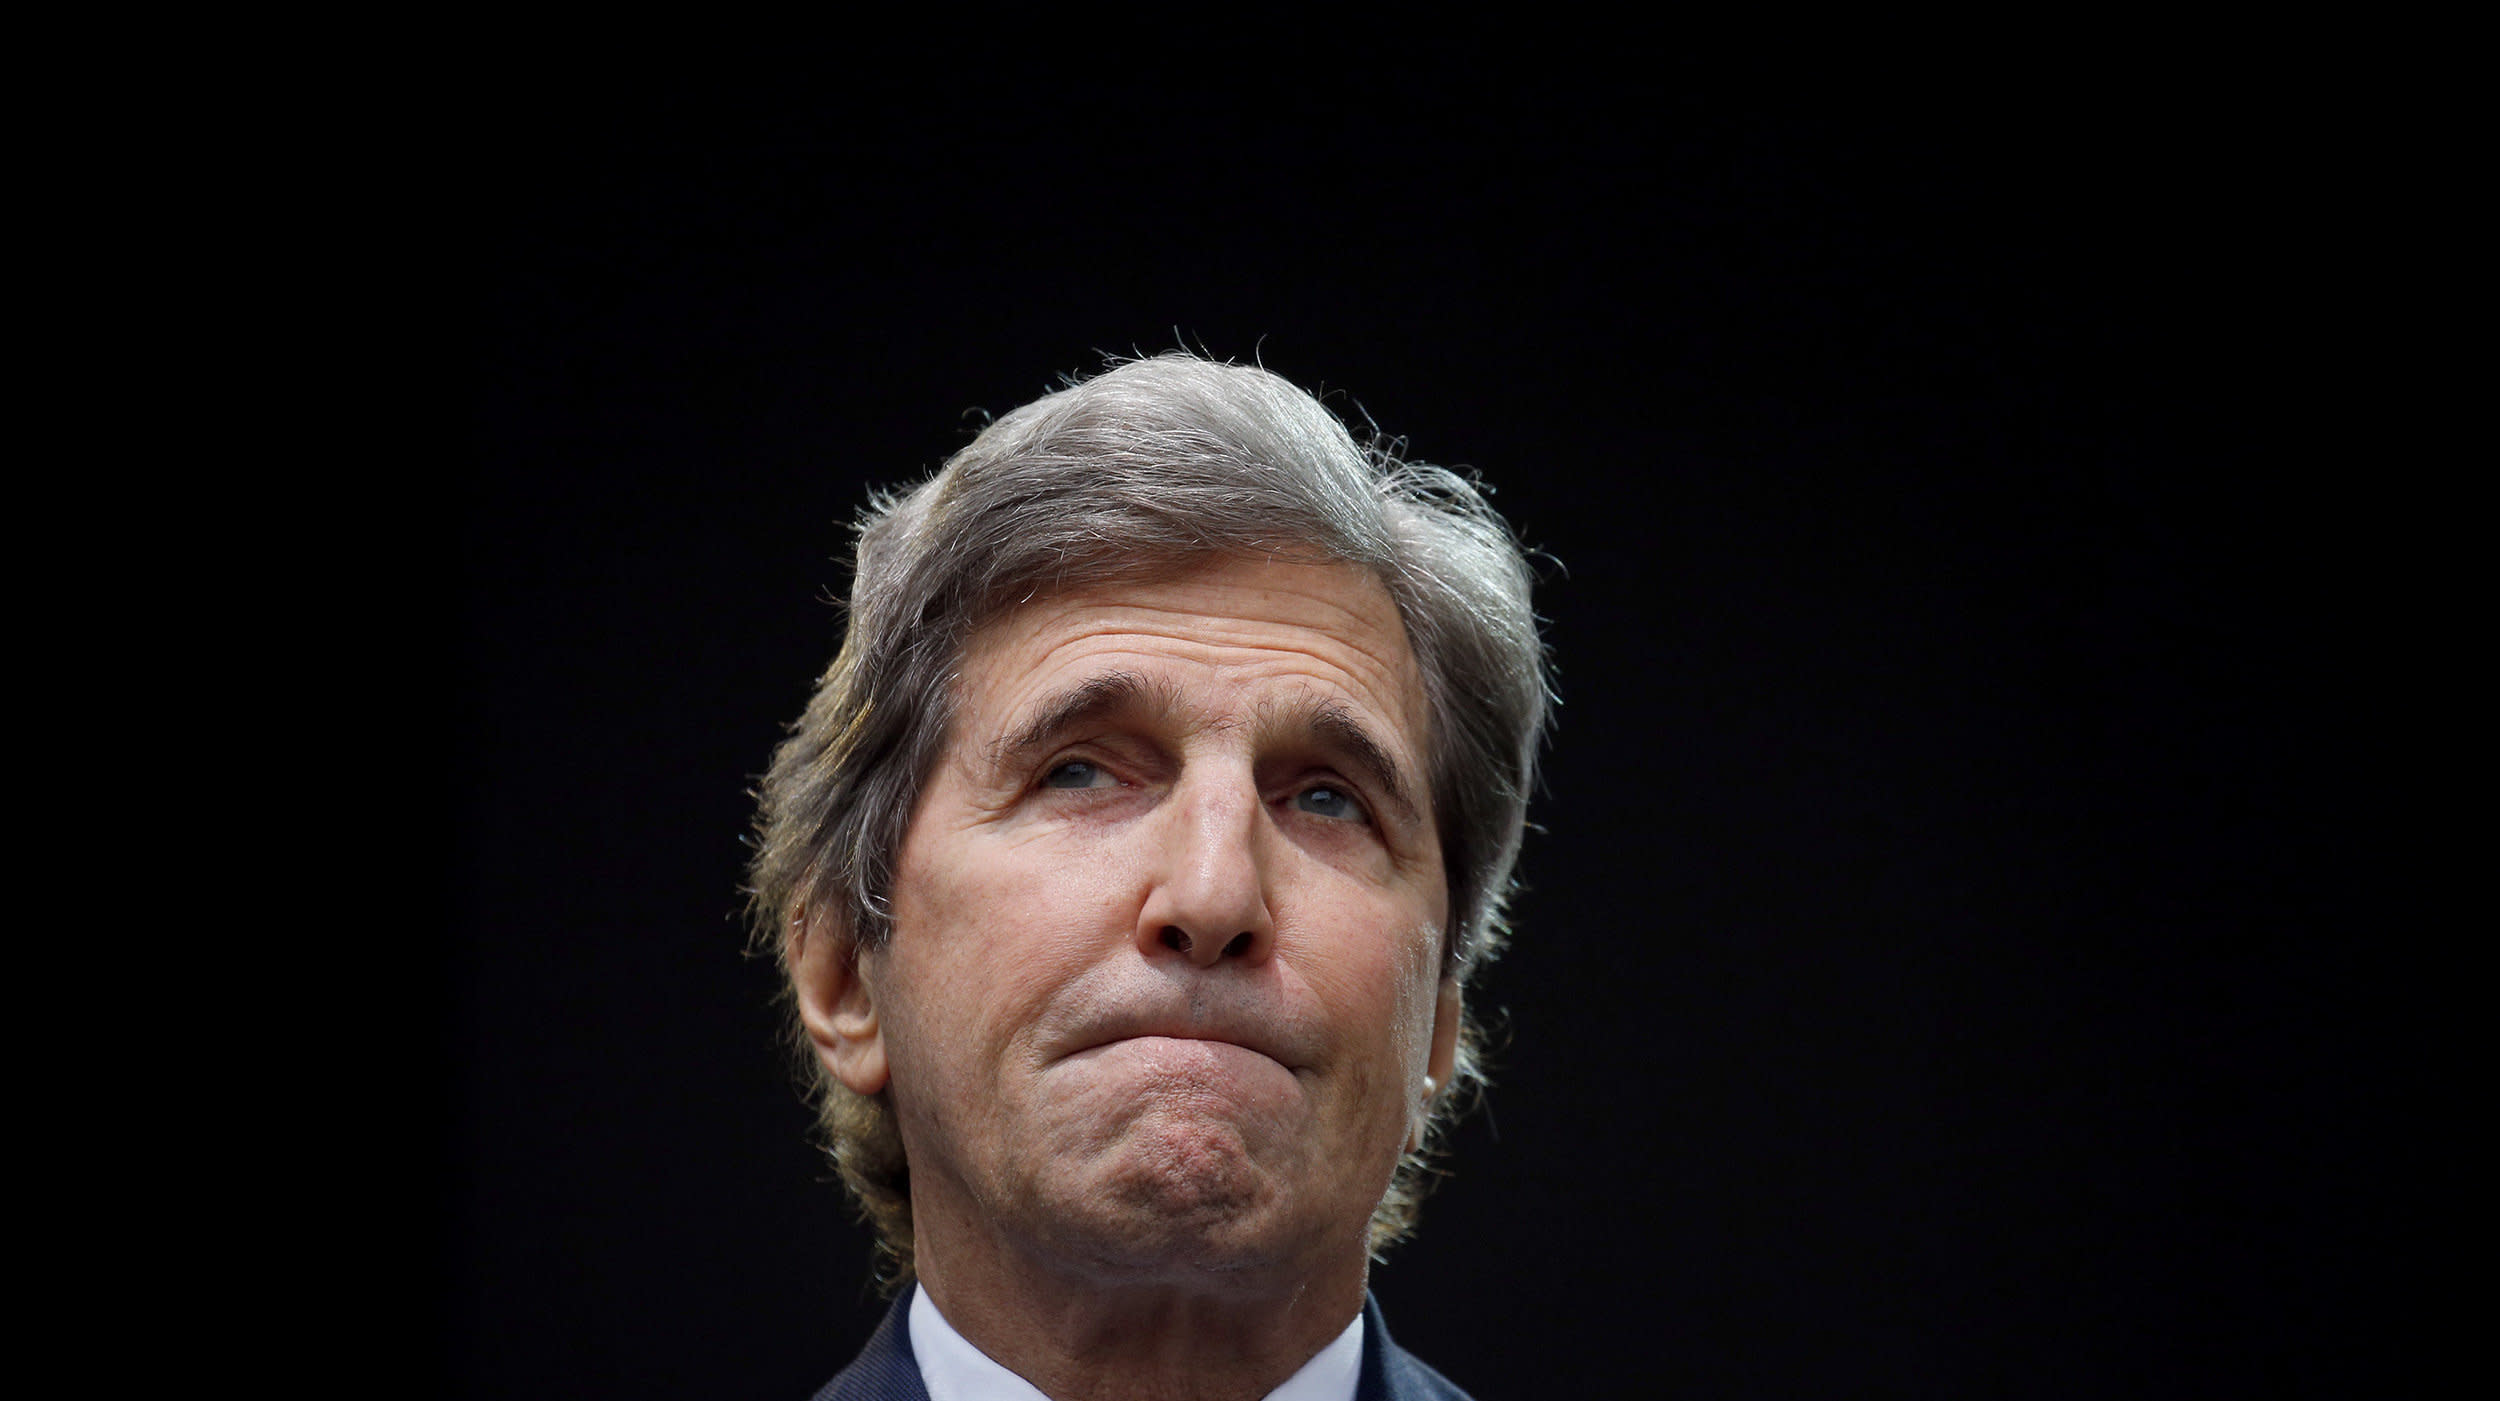 John Kerry Slams Trump For 'Chaotic' And 'Corrupt' Administration